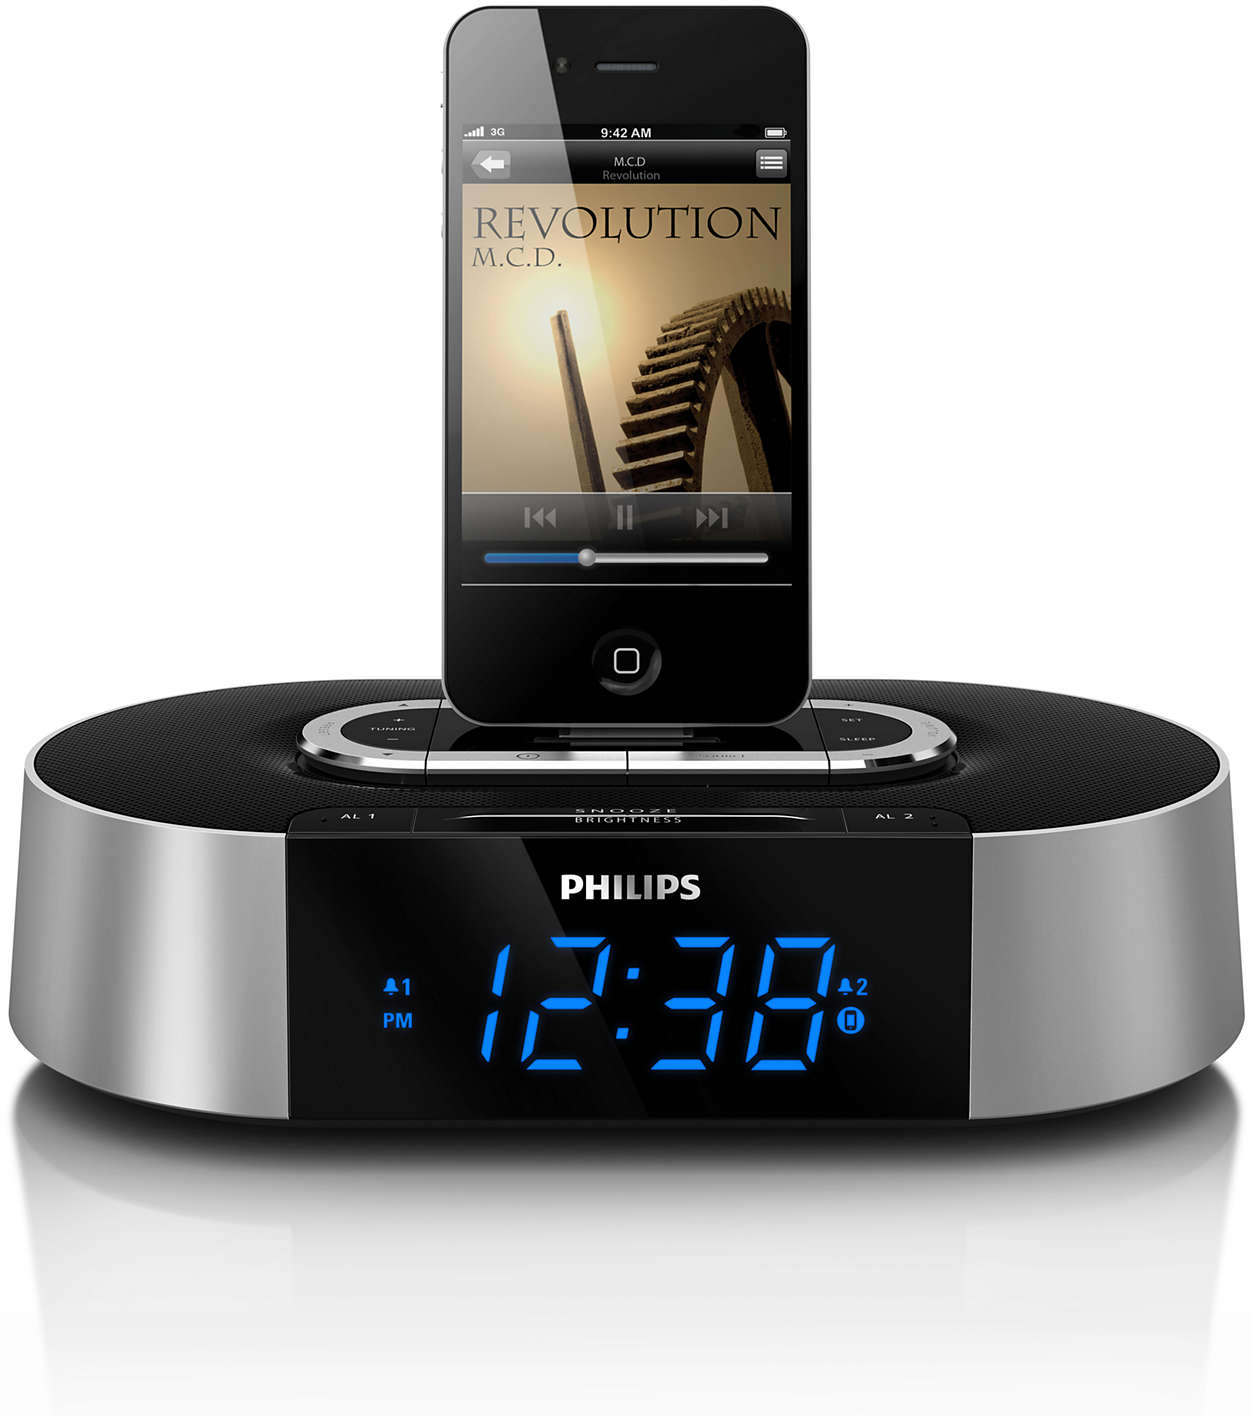 alarm clock radio for ipod iphone aj7030d 37 philips. Black Bedroom Furniture Sets. Home Design Ideas